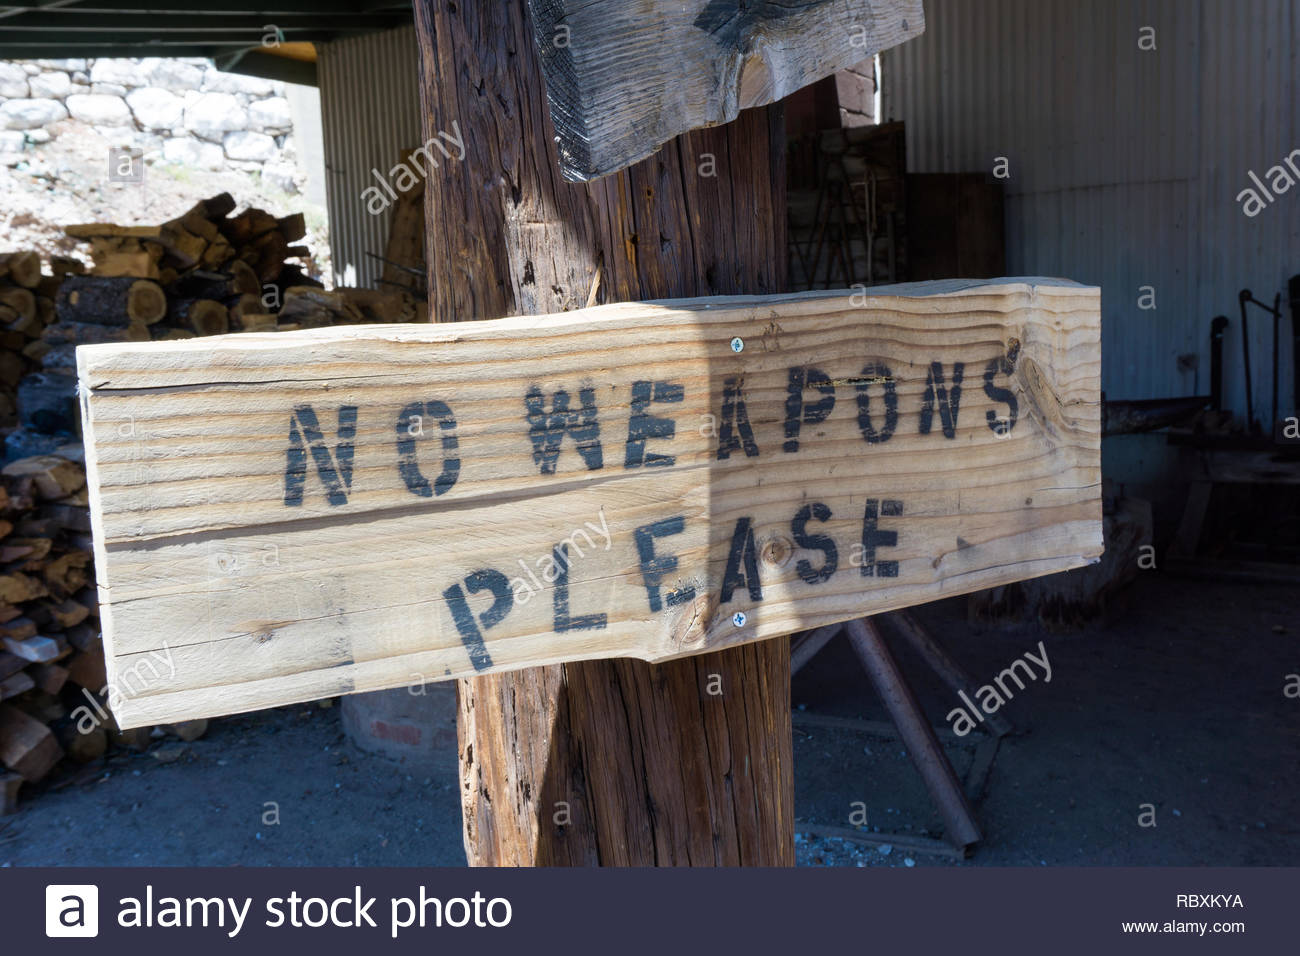 rusti wooden baord sign on a post with the warning 'no weapons' written as instructions before entering in a small town in Arizona - Stock Image